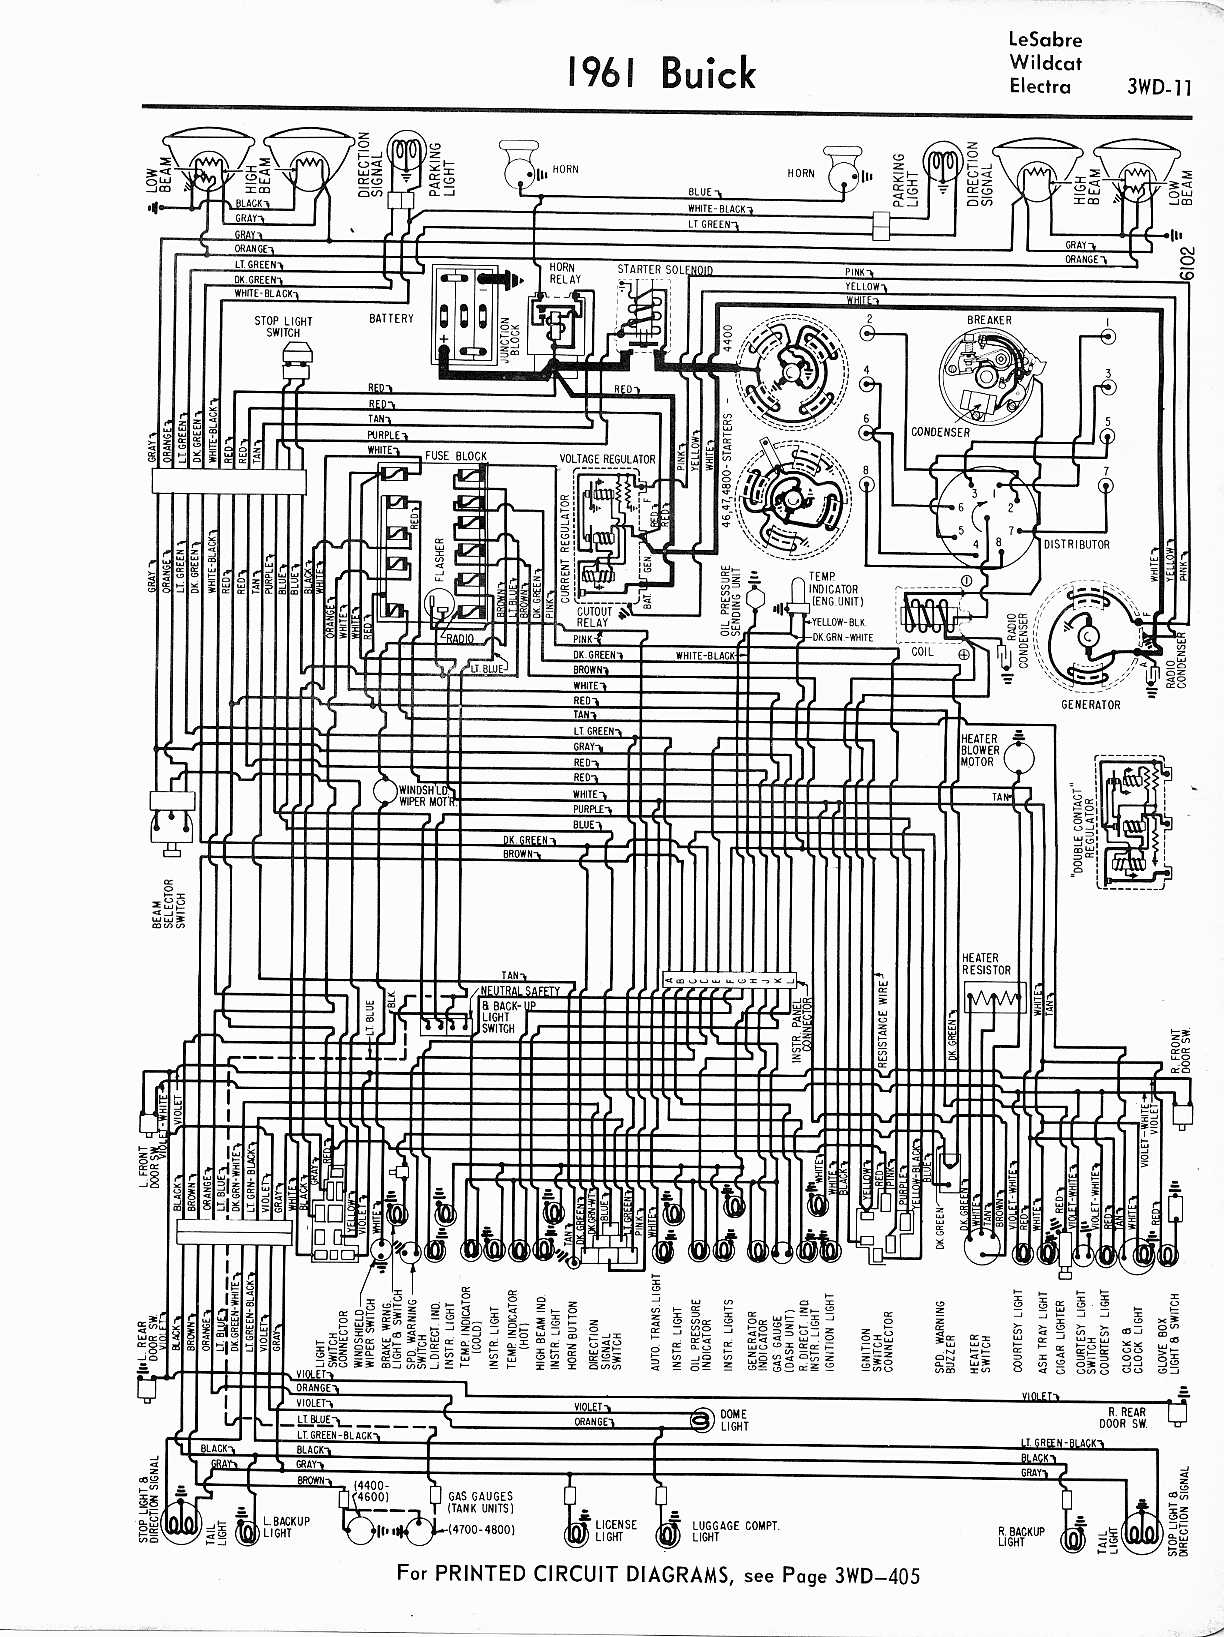 Wildcat Wiring Diagram Manual Guide Epiphone Buick Diagrams 1957 1965 Rh Oldcarmanualproject Com Wildkat Forest River